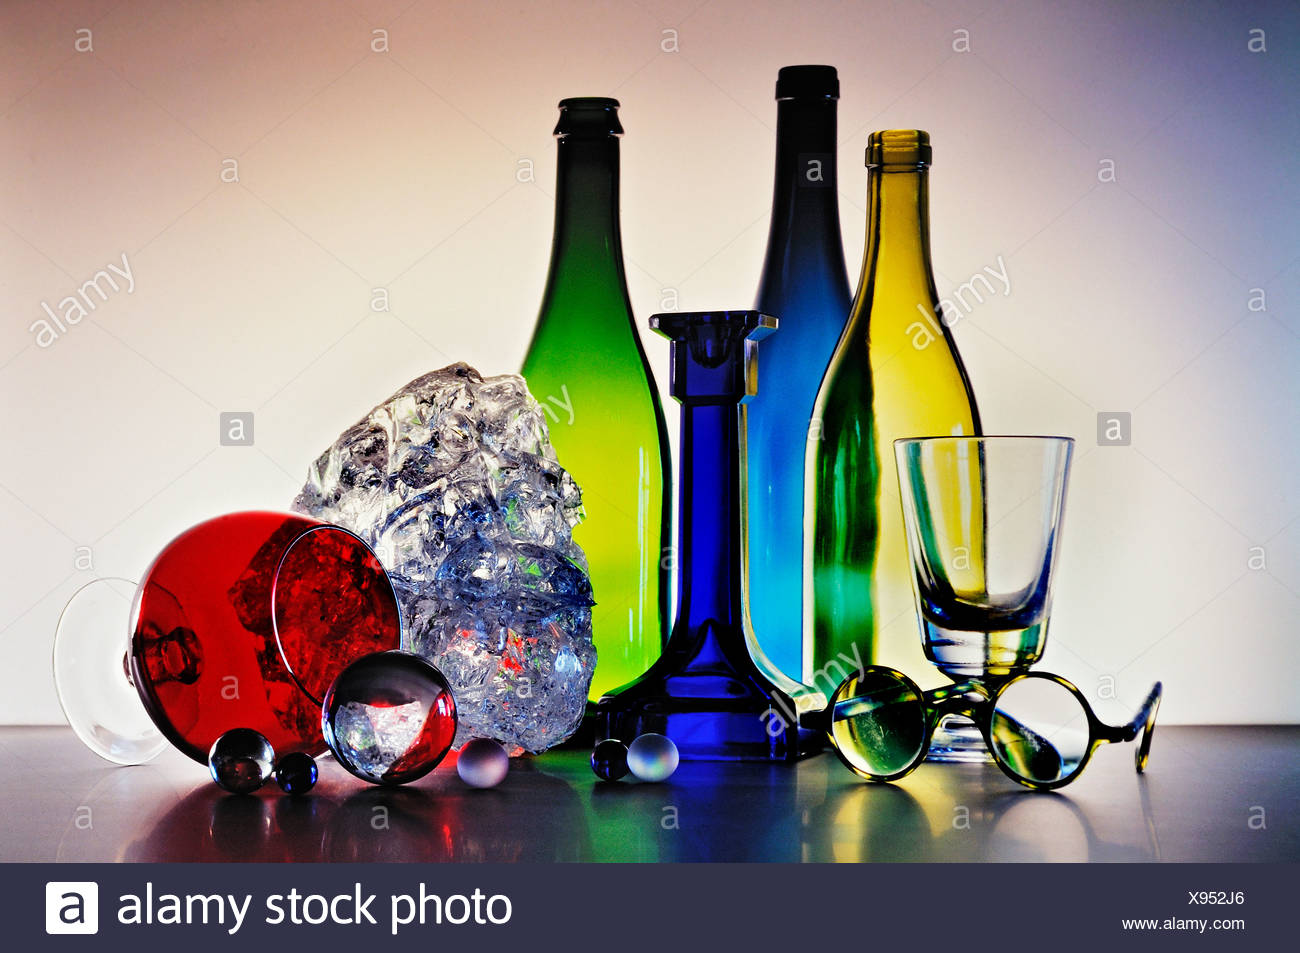 Coloured glass objects - Stock Image